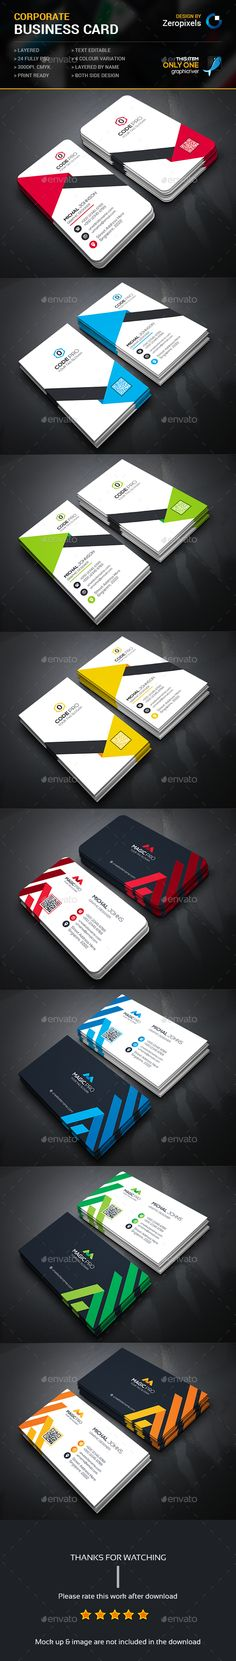 Buy Corporate Business Card Bundle by zeropixels on GraphicRiver. FEATURES: Easy Customizable and Editable Business card in with bleed CMYK Color Design in 300 DPI Resolut. Business Card Maker, Business Cards Layout, Letterpress Business Cards, Business Card Psd, Cool Business Cards, Custom Business Cards, Business Card Design, Corporate Business, Corporate Identity